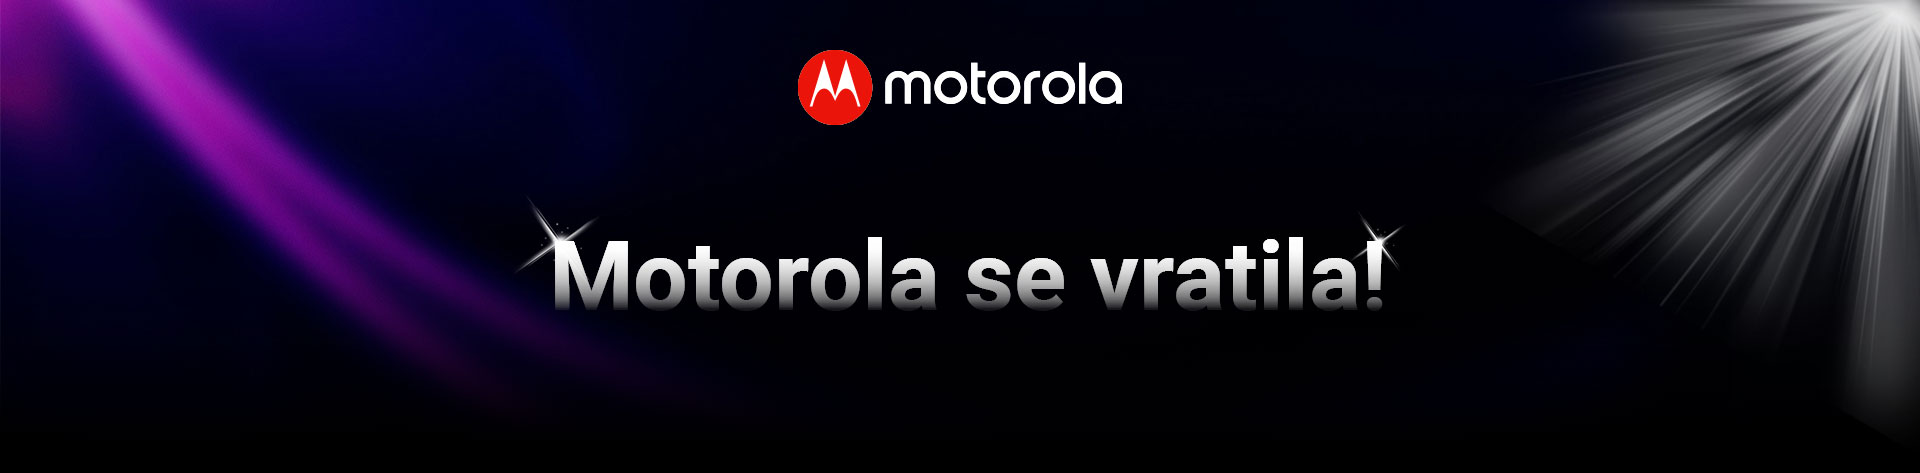 motorola-se-vratila-header-bg-final